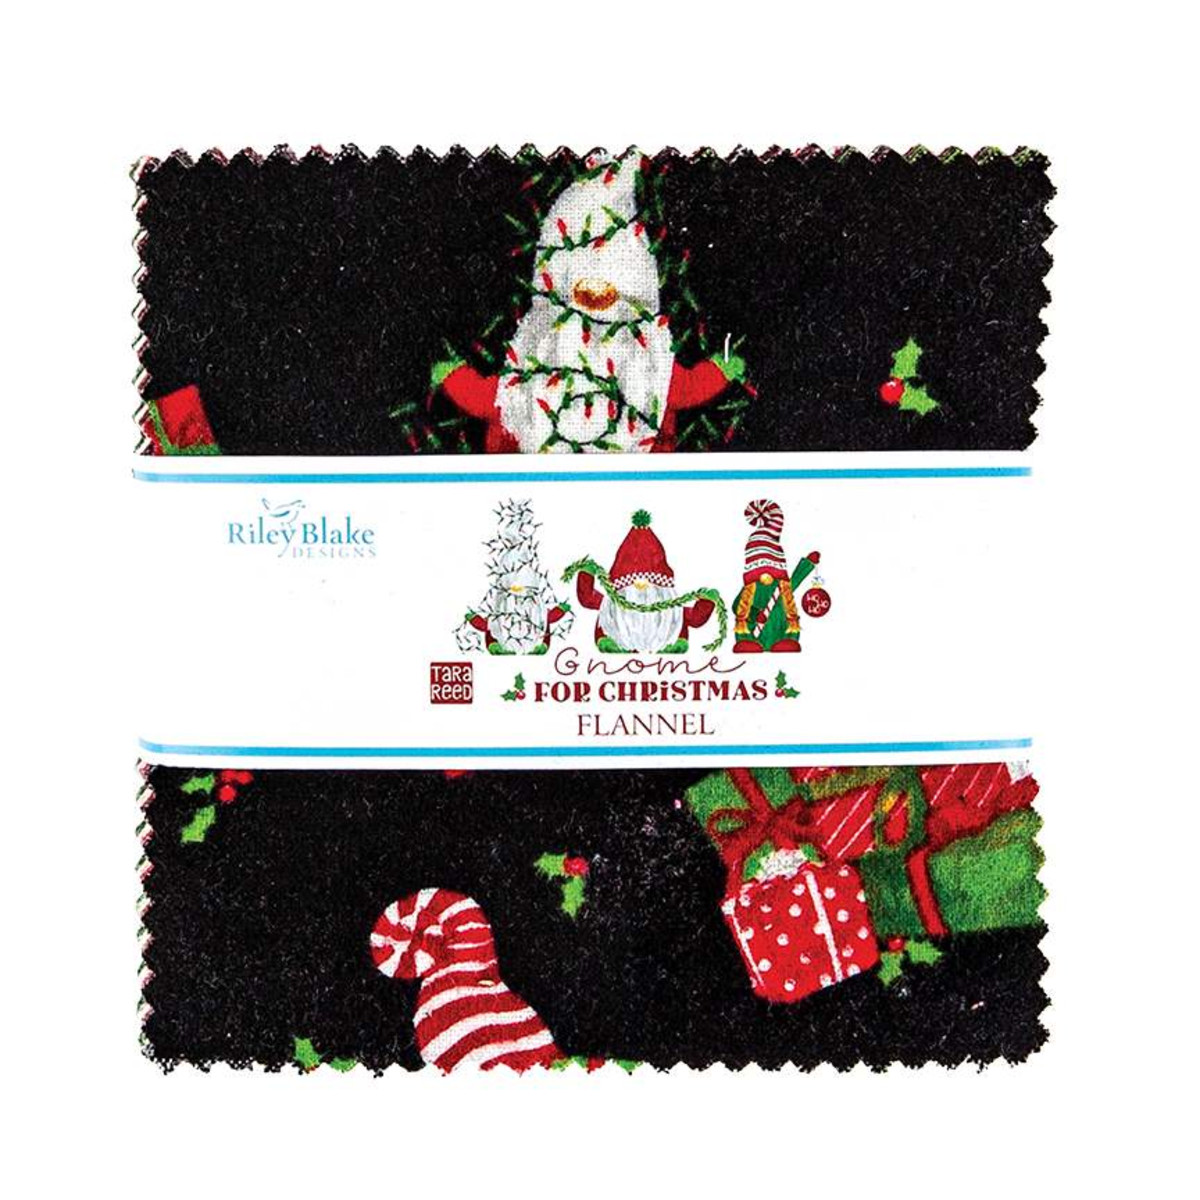 Riley Blake Charm Pack - Flannel Gnome for Christmas by Tara Reed